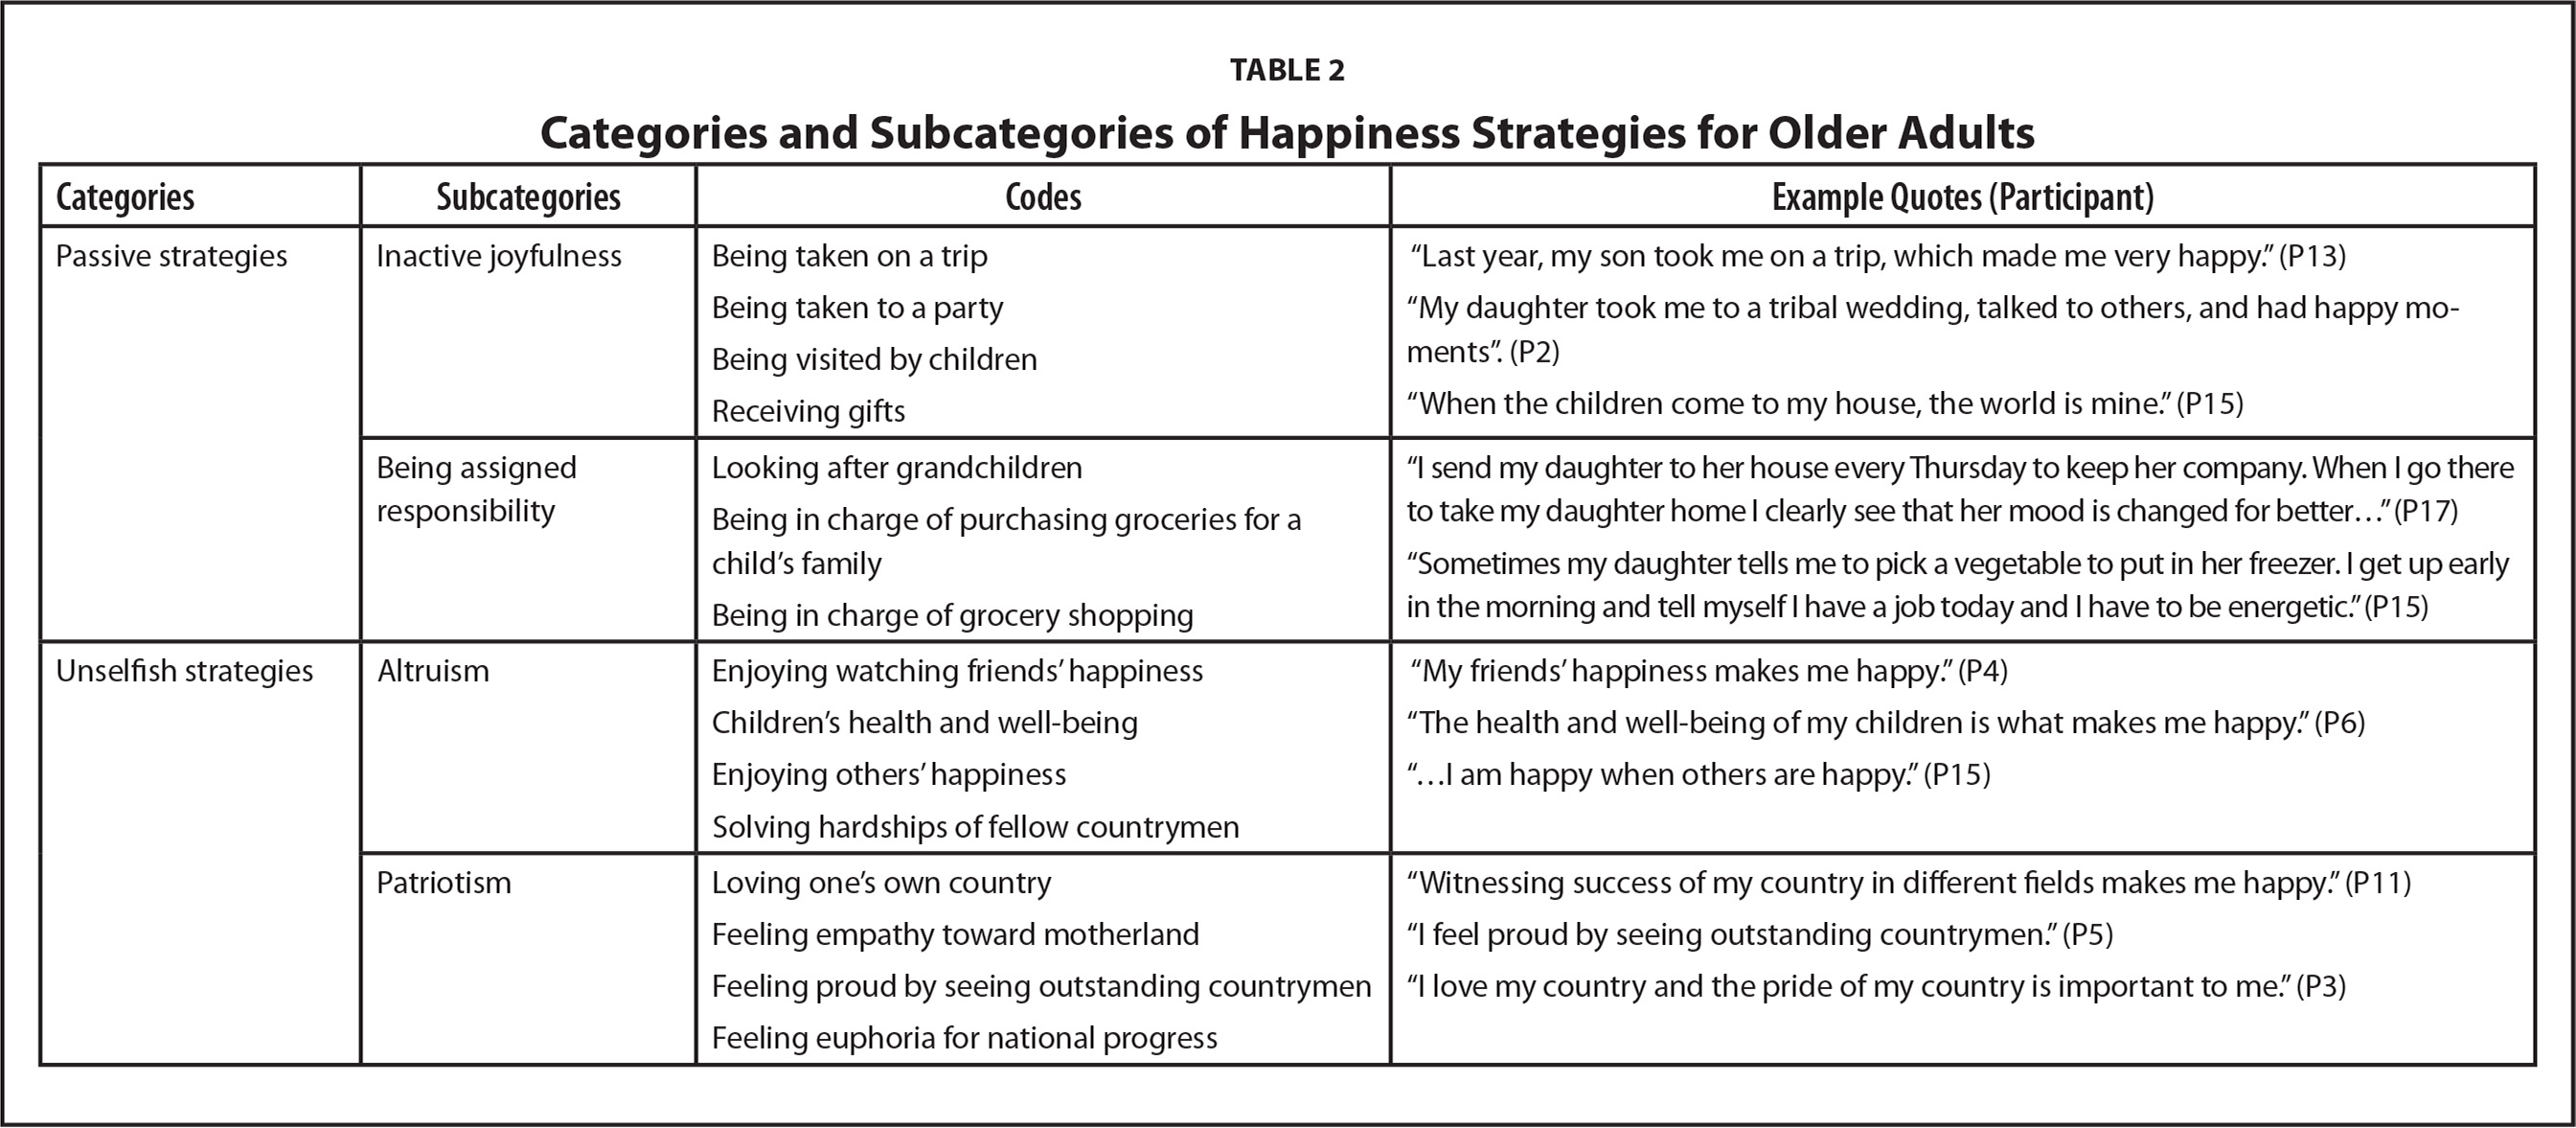 Categories and Subcategories of Happiness Strategies for Older Adults